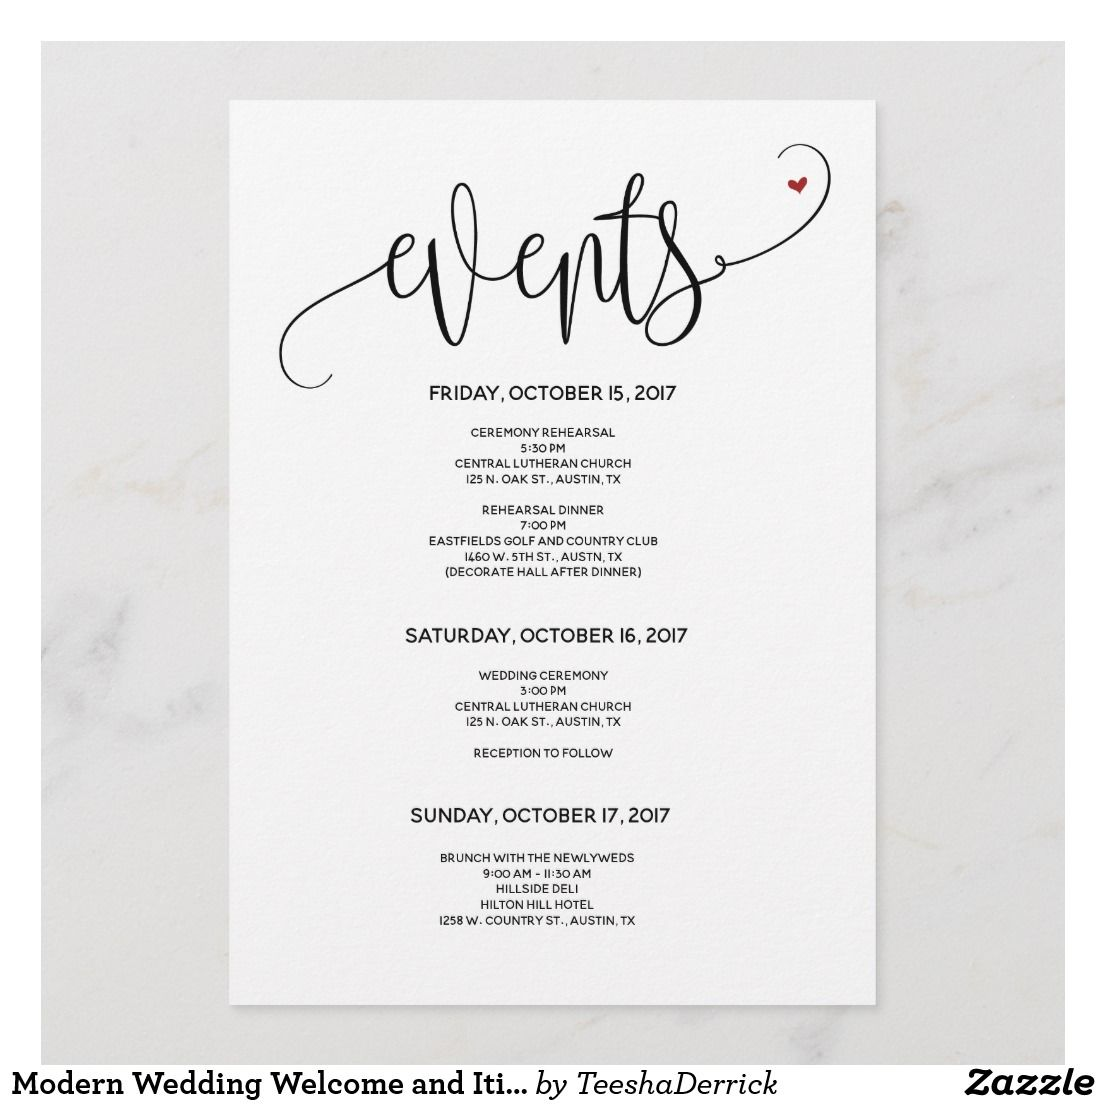 Modern Wedding Welcome And Itinerary Card V24 Zazzle Com